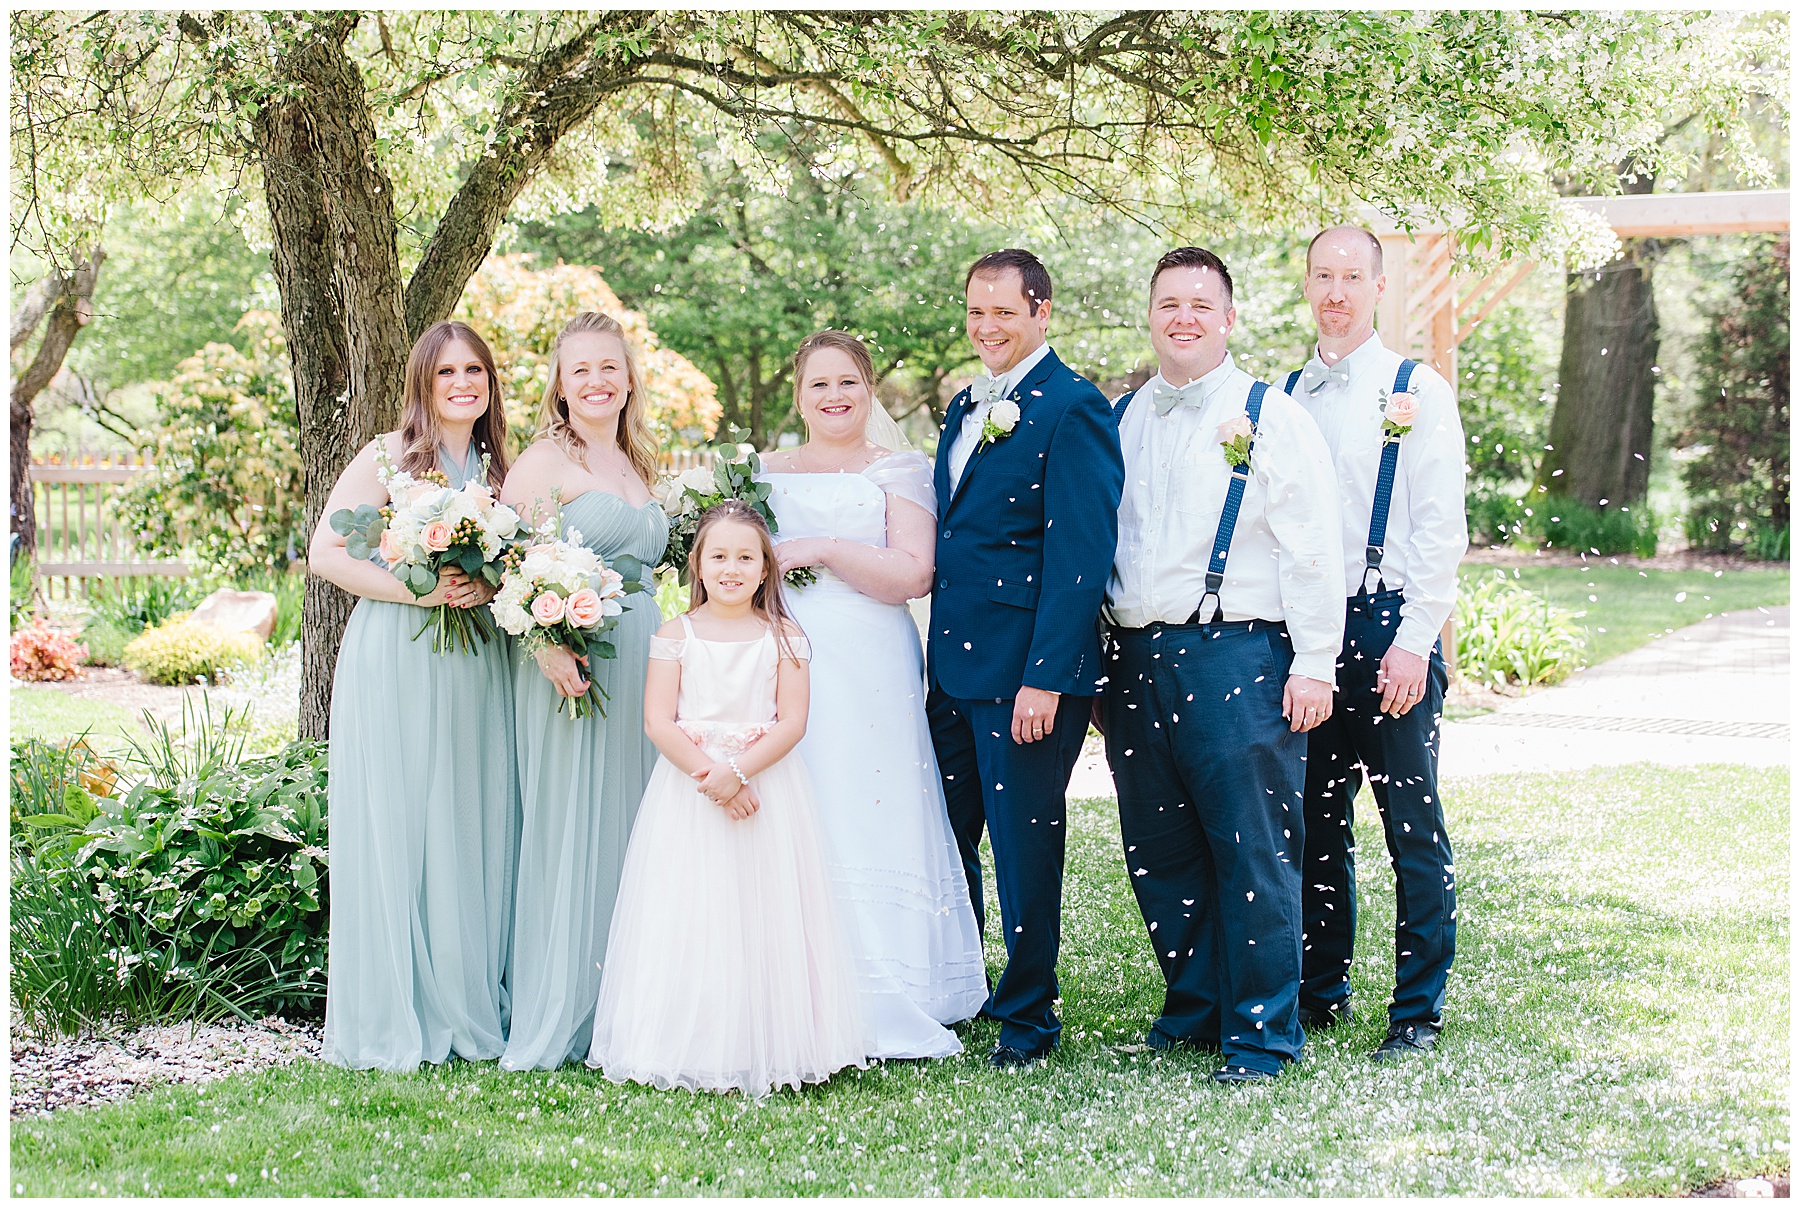 foster park fort wayne indiana wedding photographer_0219